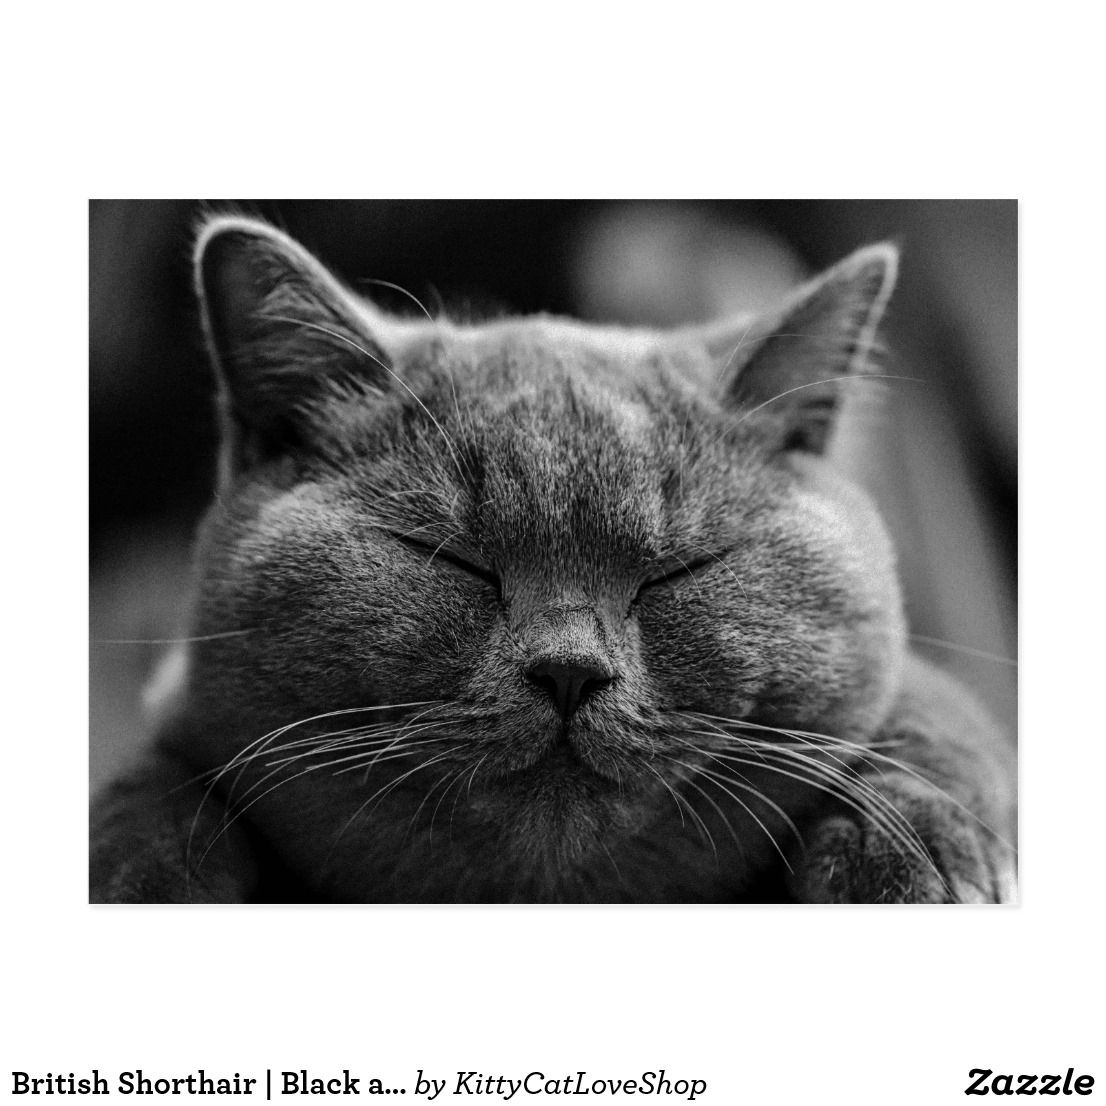 British Shorthair Black and White Cat Portrait (With